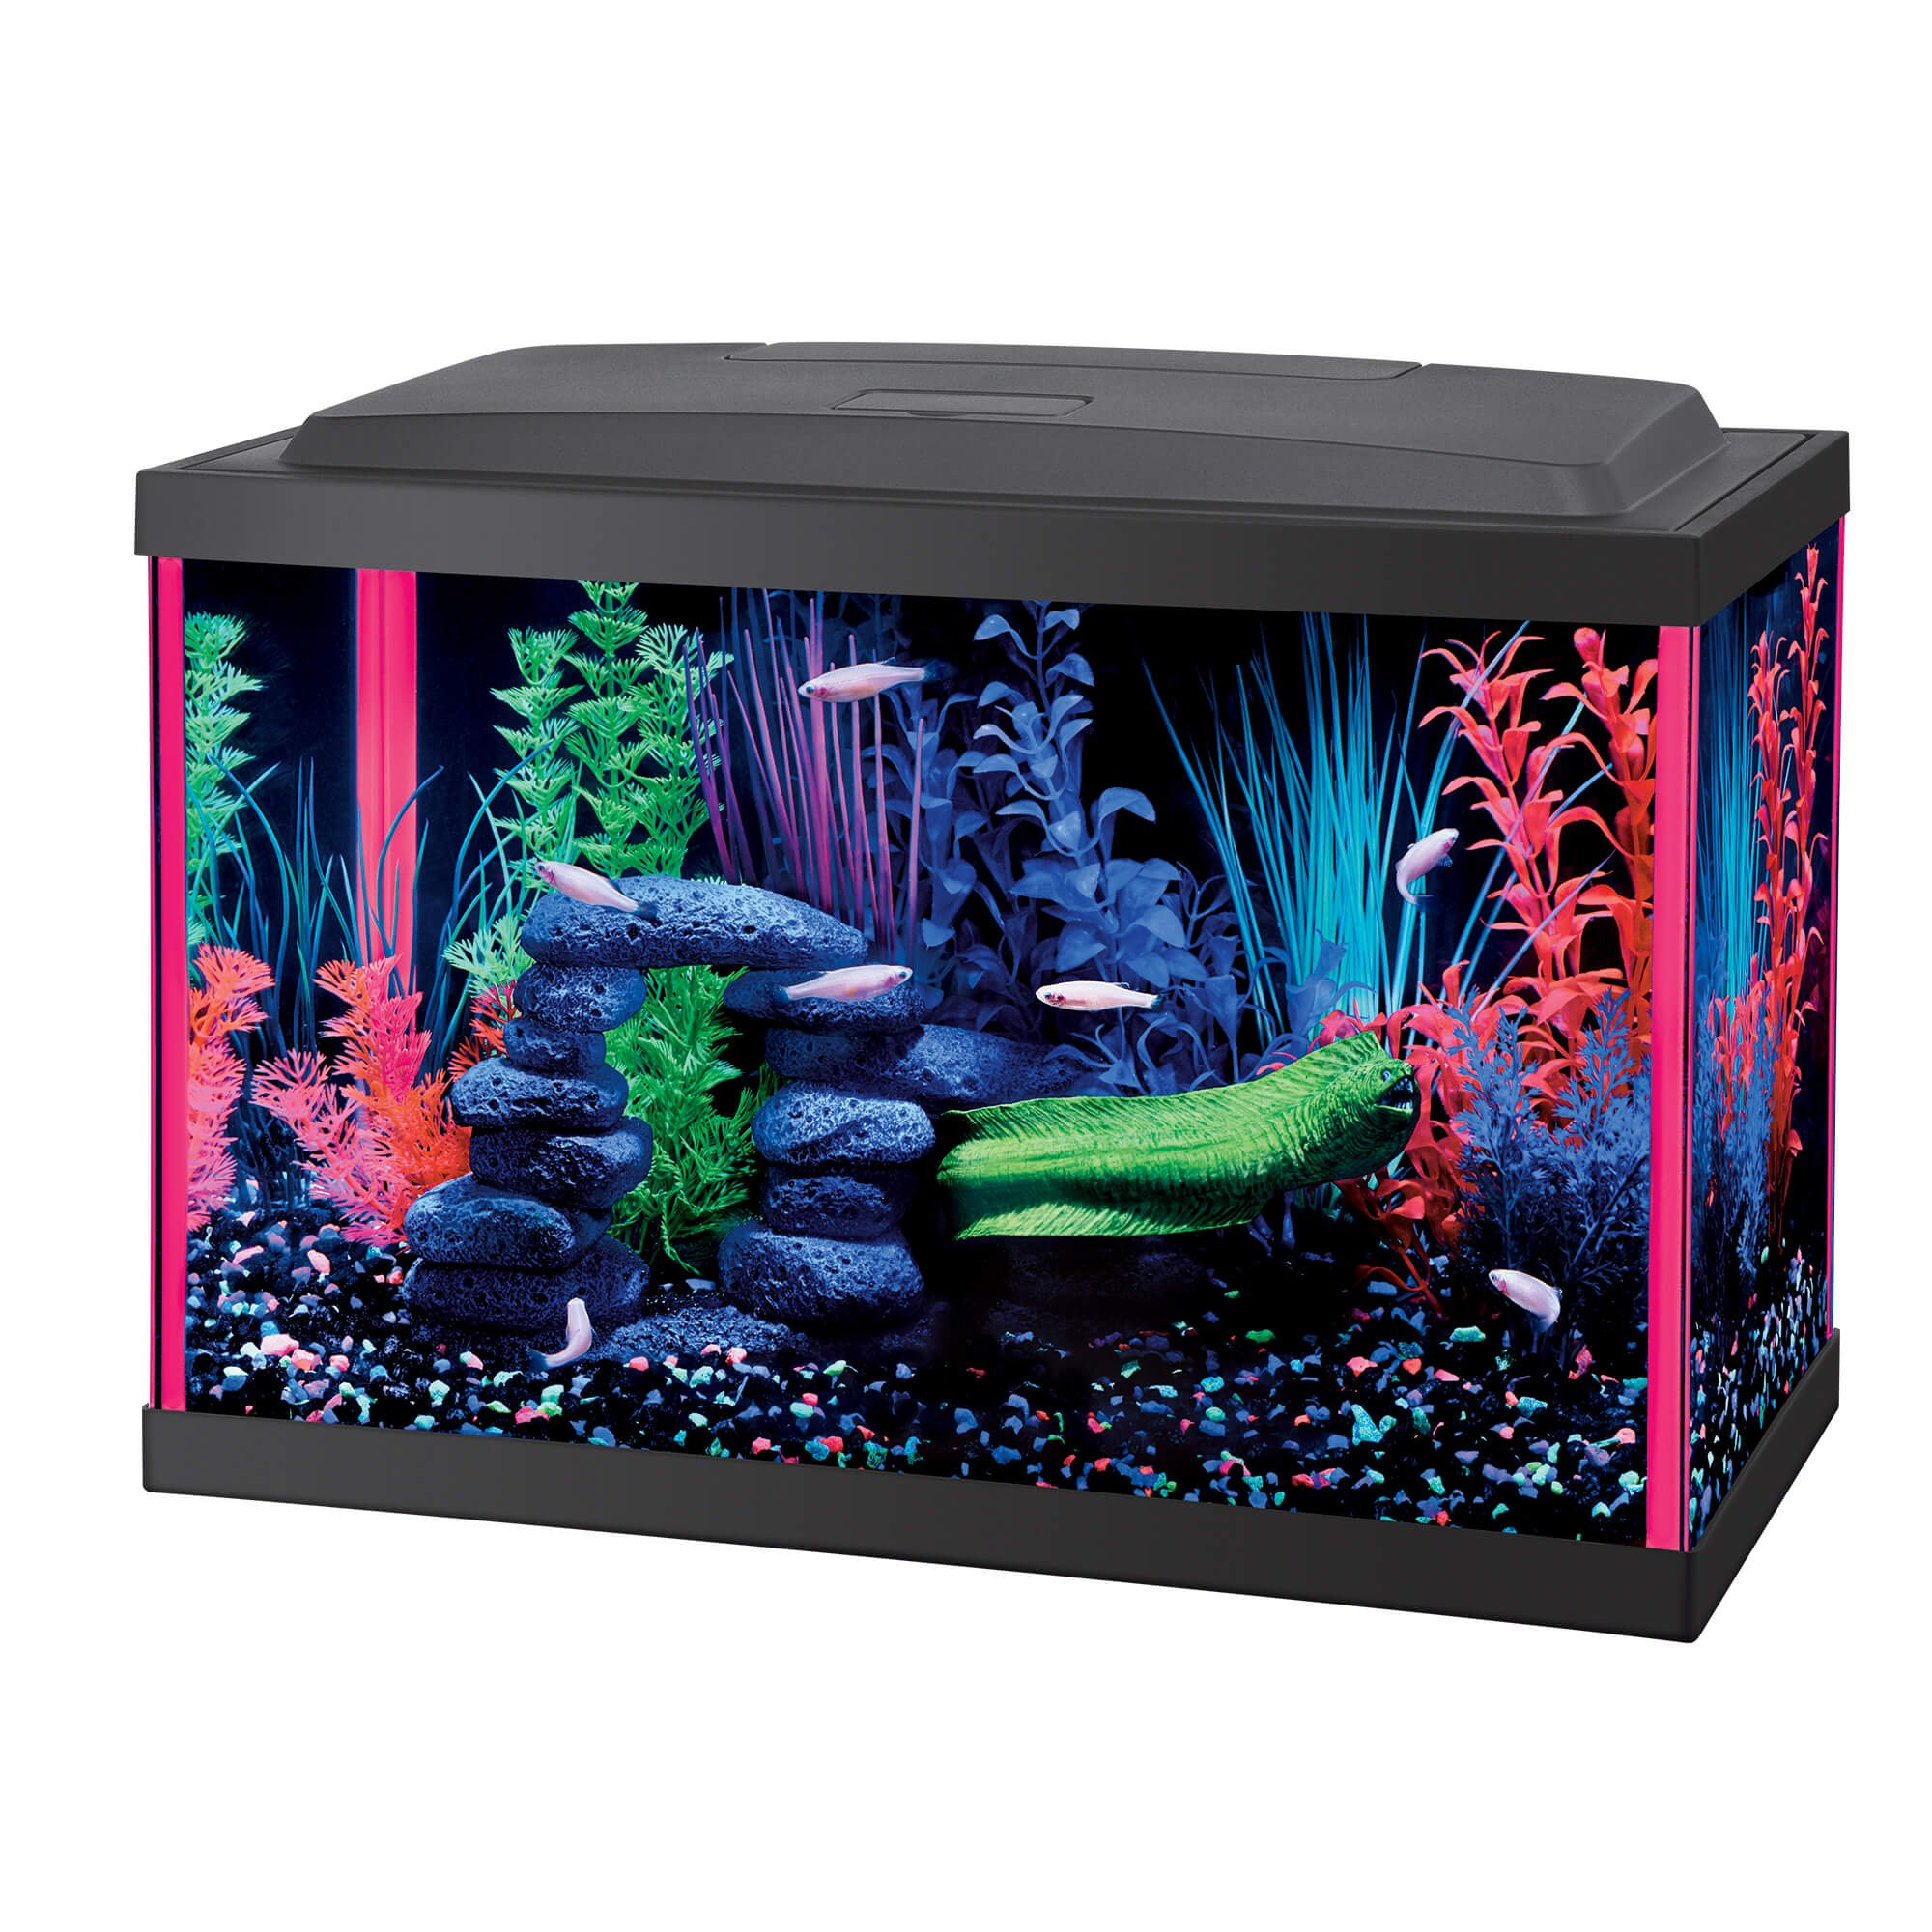 Aqueon LED 5 5 Gallon Pink Aquarium Kit